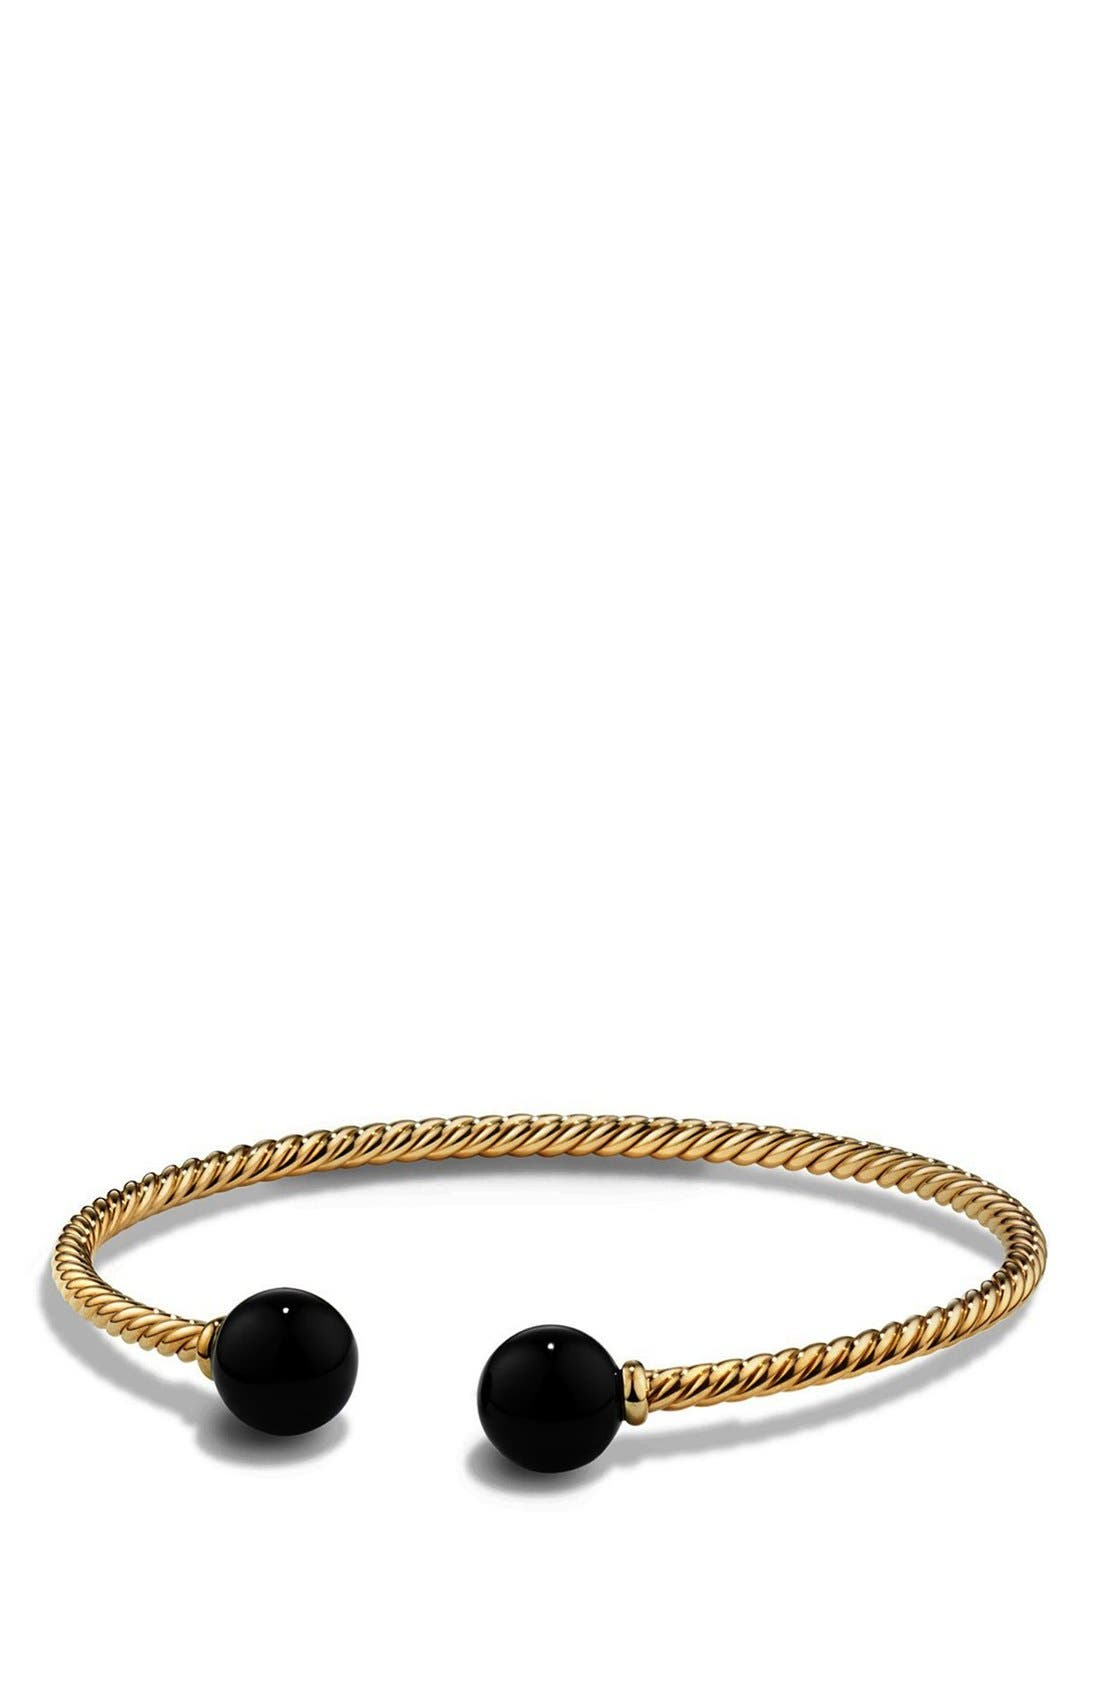 DAVID YURMAN, 'Solari' Bead Bracelet, Main thumbnail 1, color, BLACK ONYX